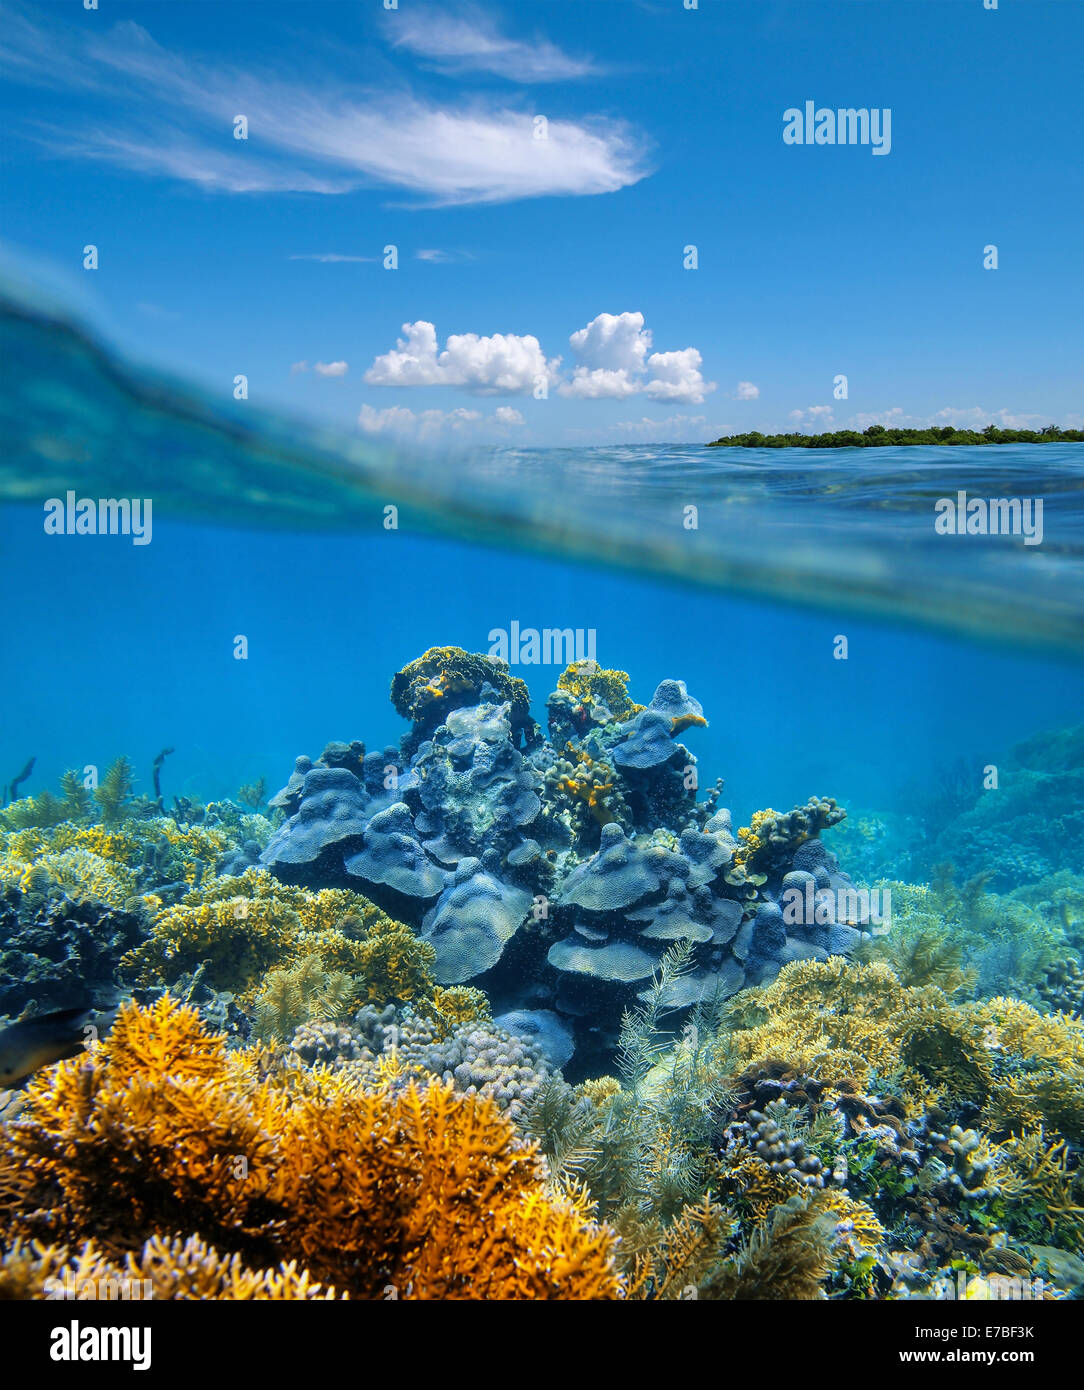 Over Under Split View In The Caribbean Sea With An Healthy Coral